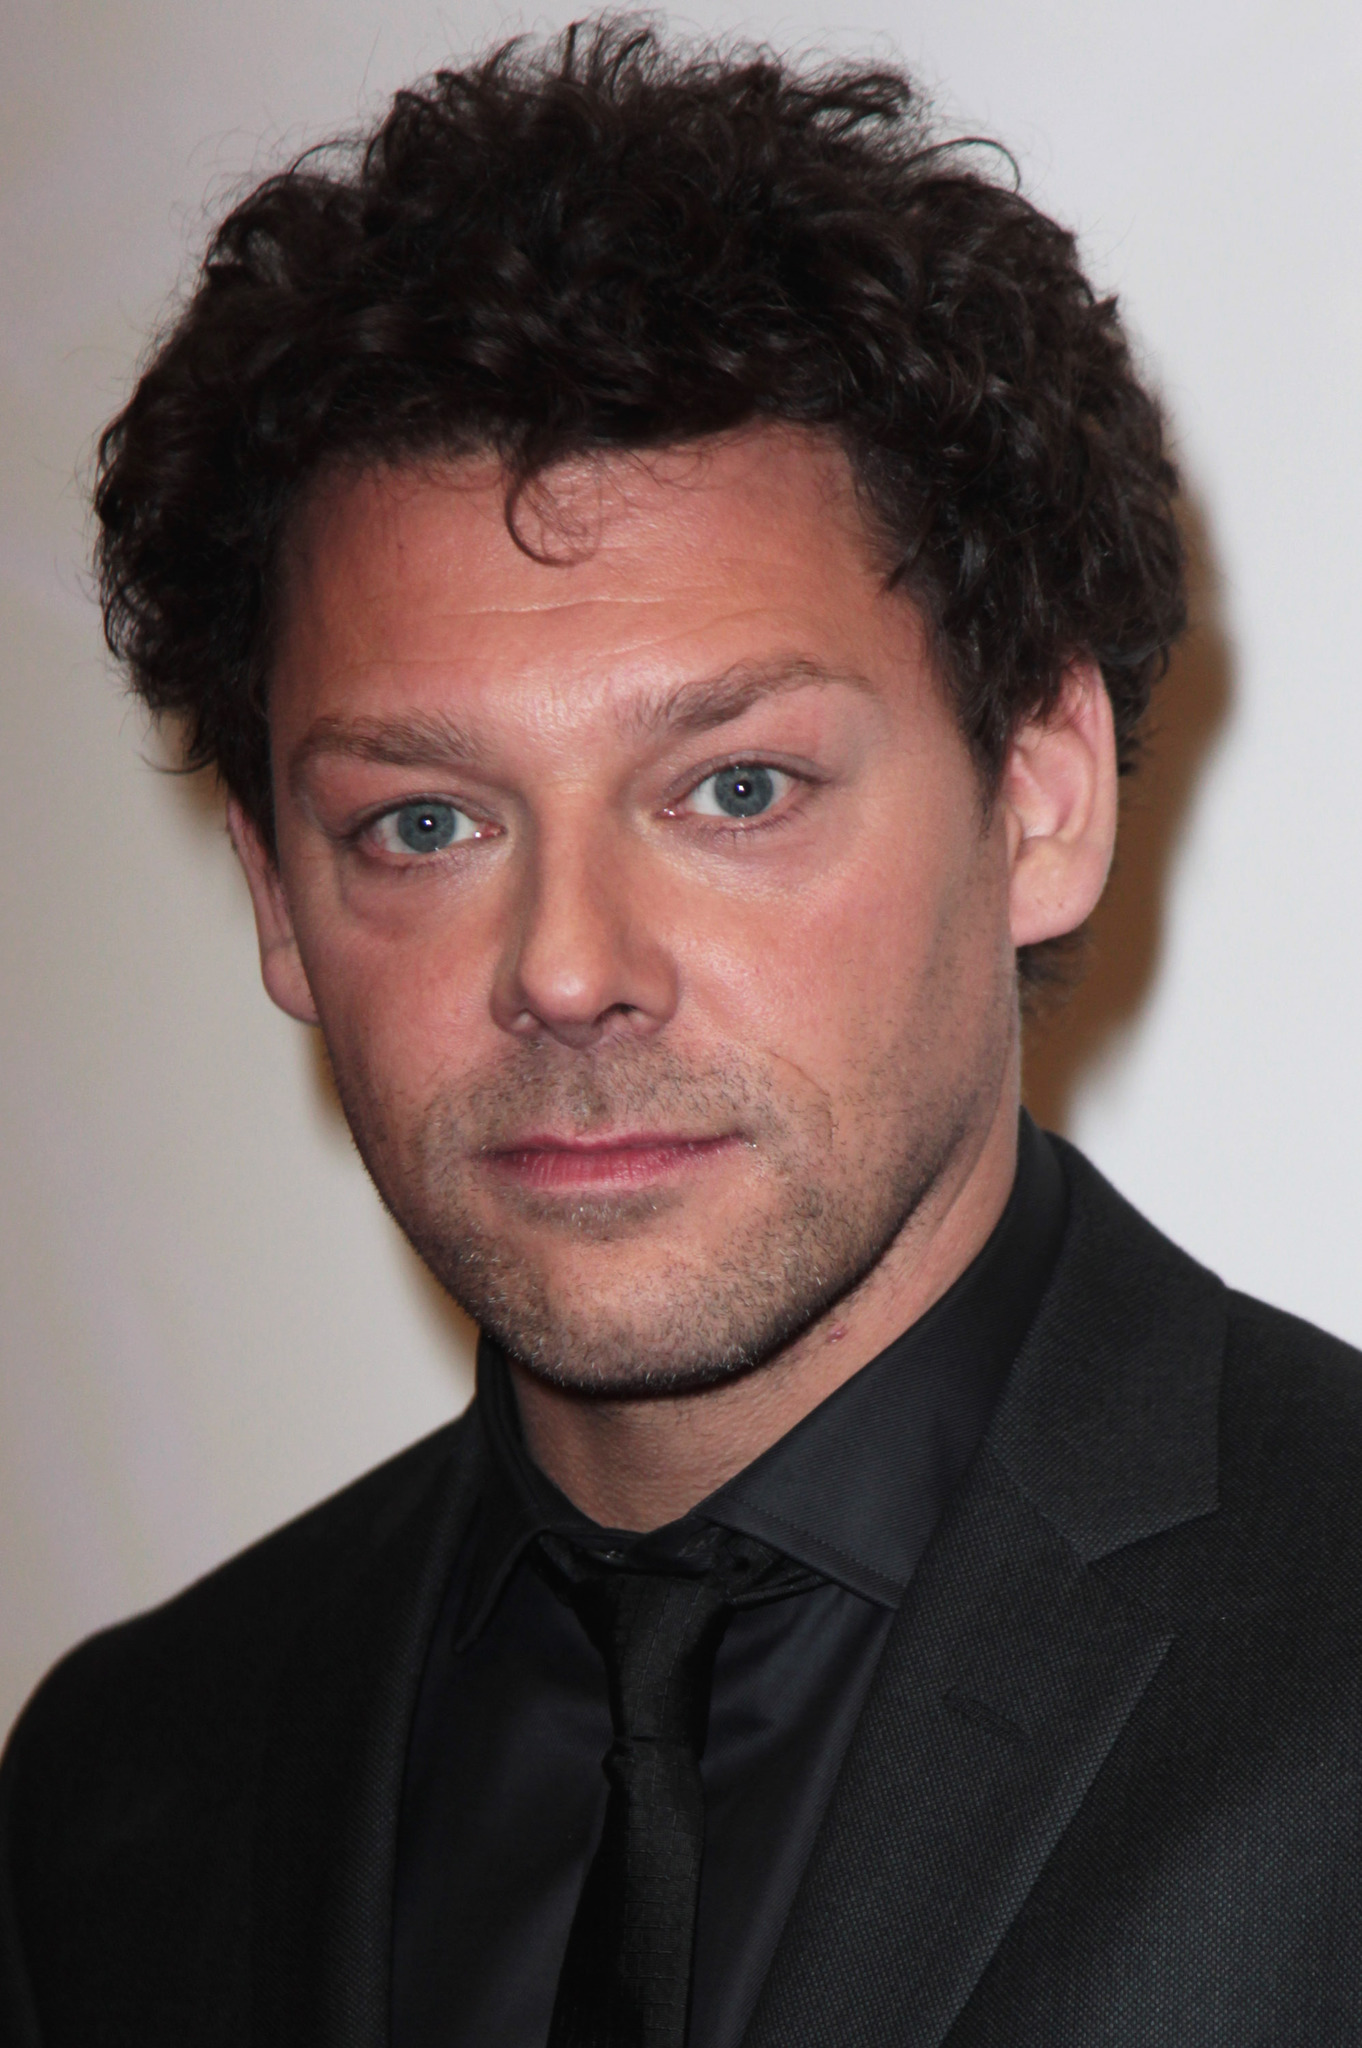 Richard Coyle (born 1972)